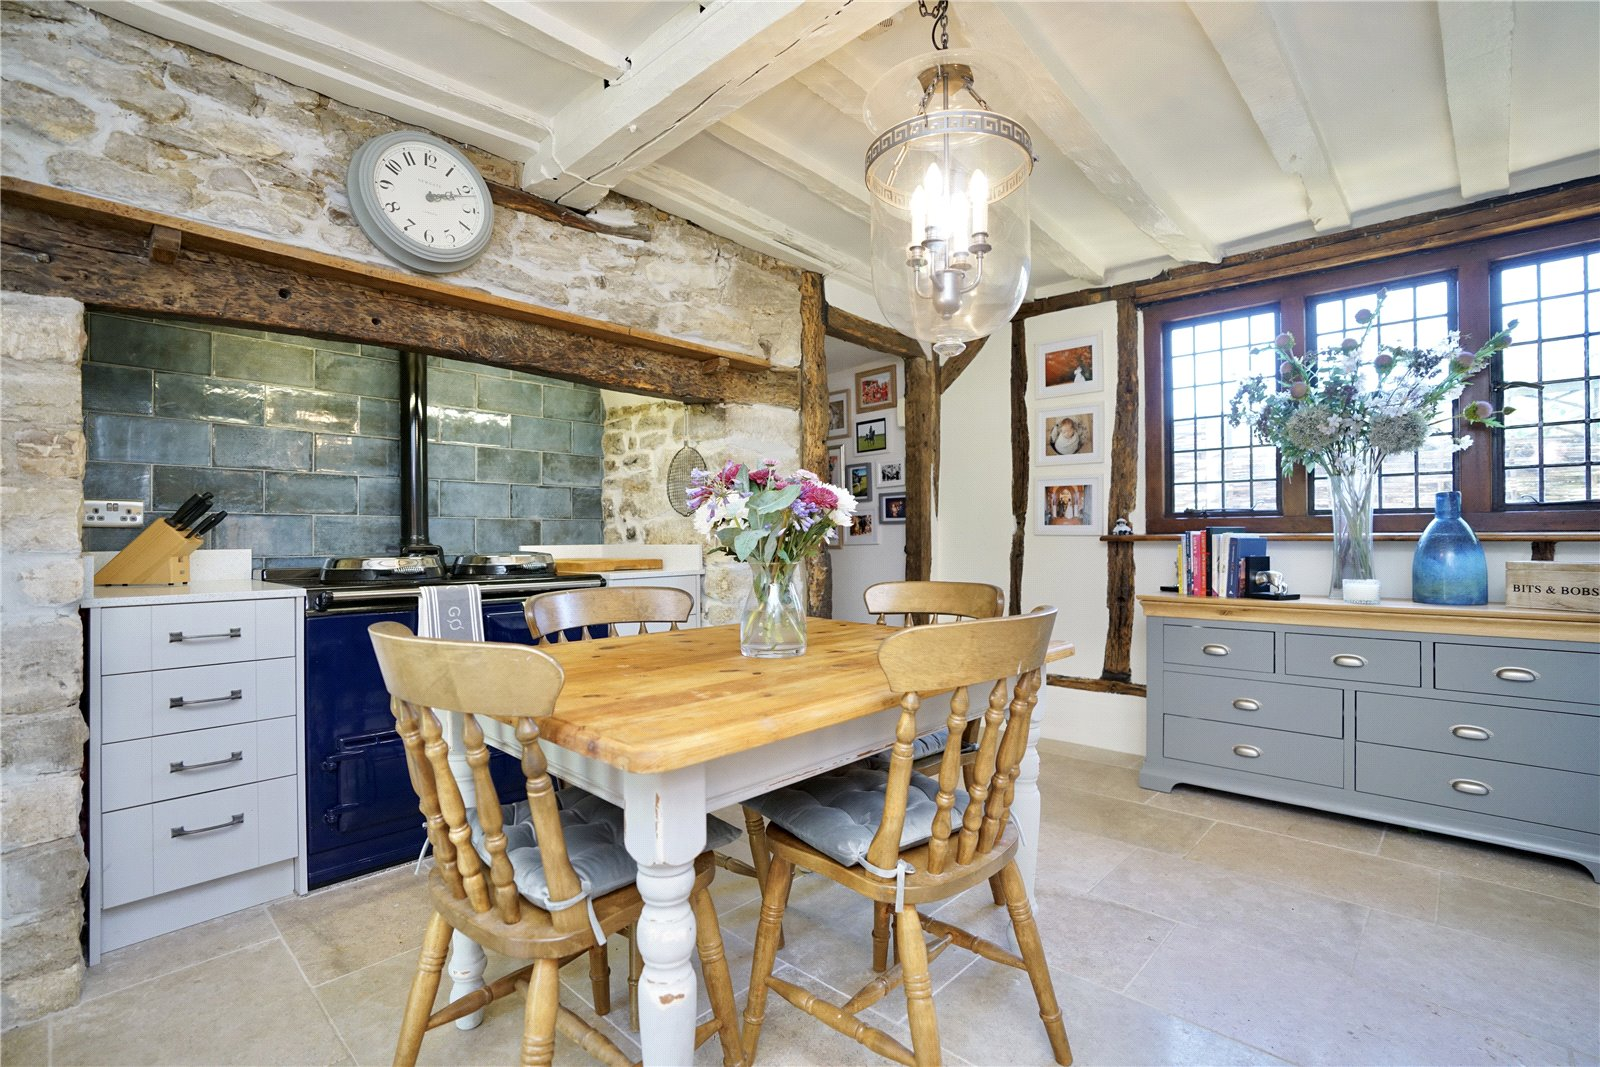 3 bed house for sale in Great Staughton  - Property Image 1